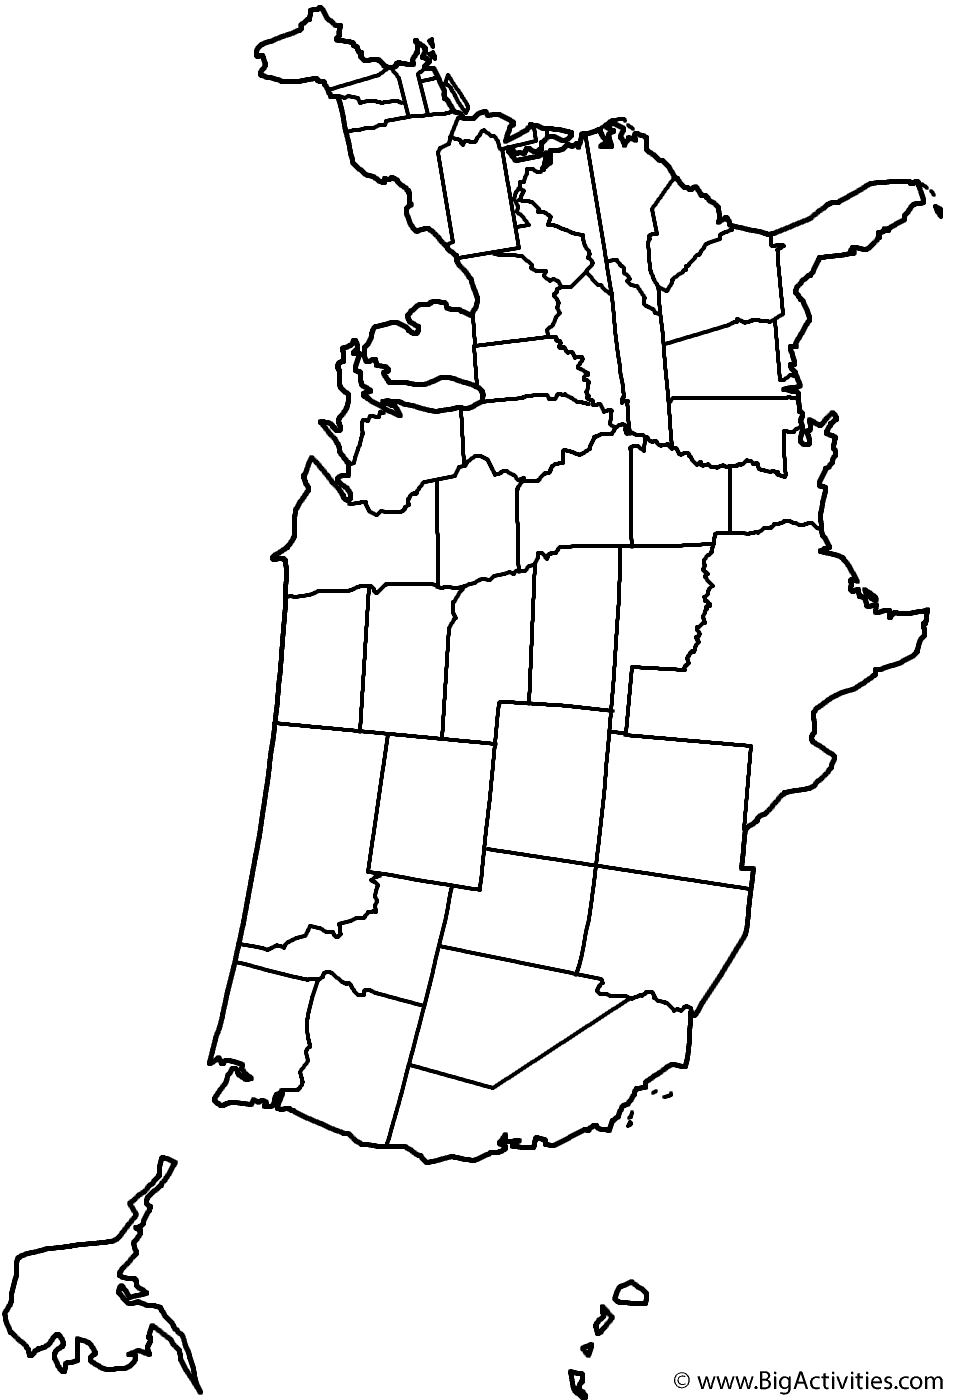 Blank Map Of Us Ngemapservicedapartmentsco - Blank map of us pdf